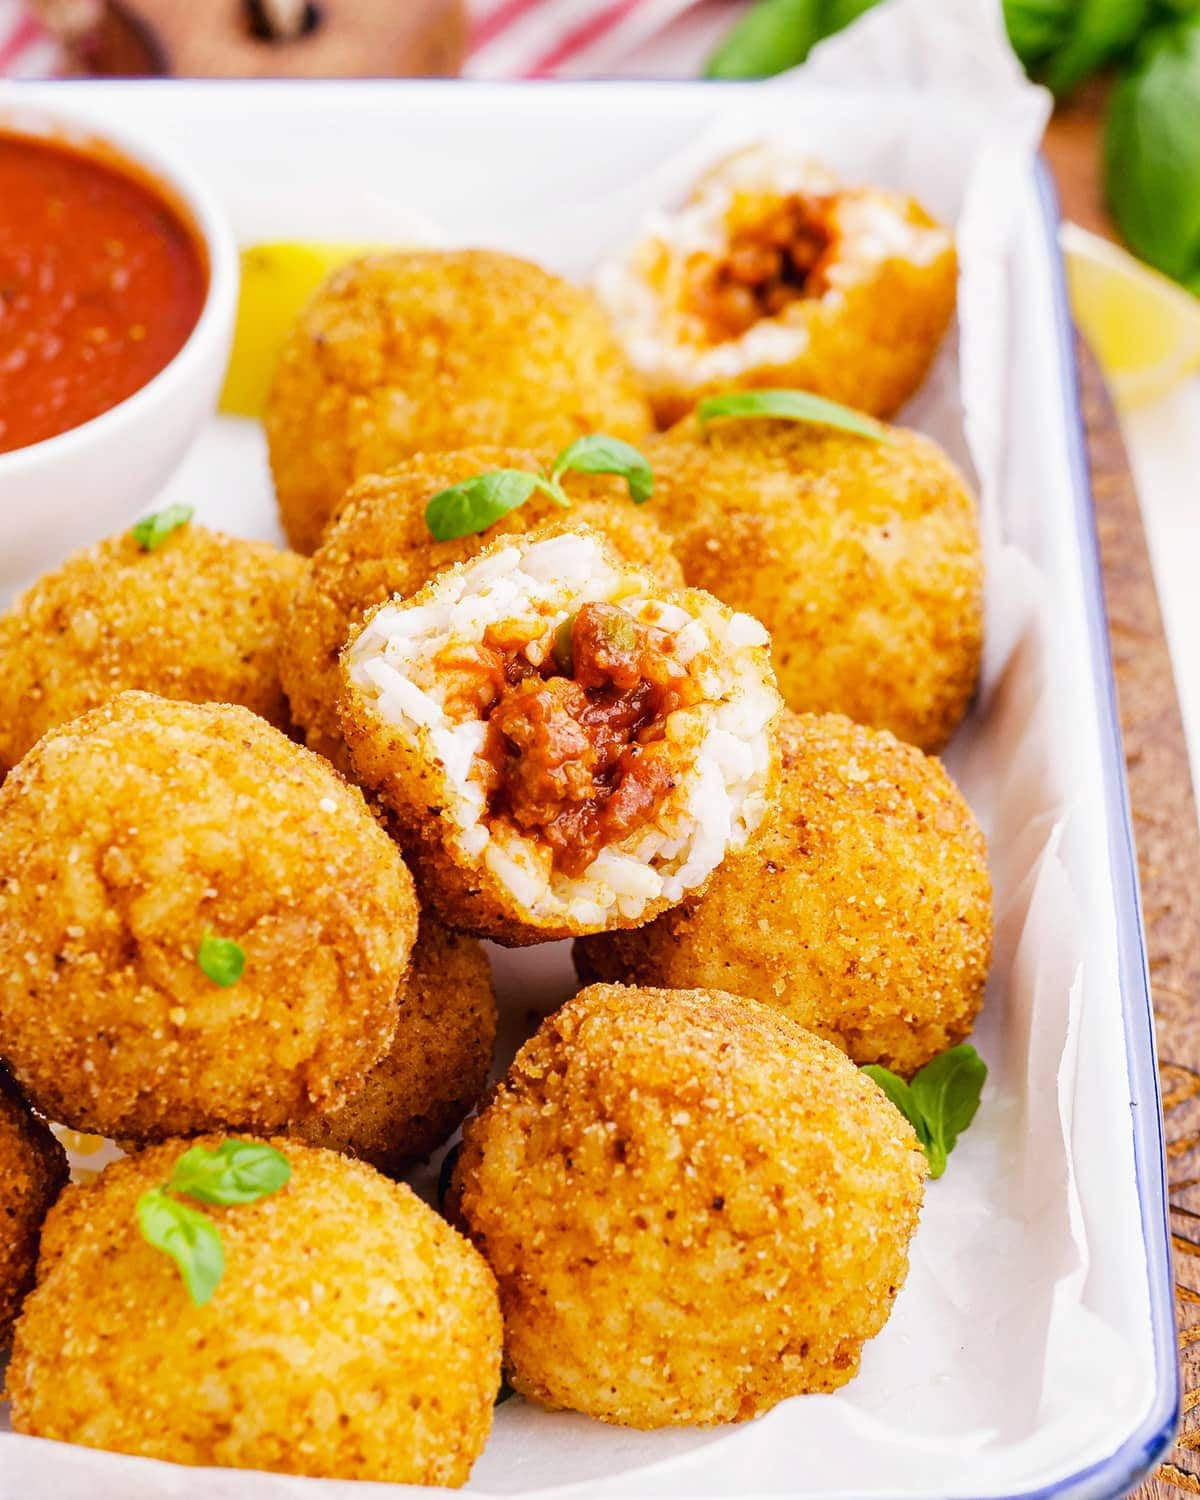 A pile of arancini rice balls, and one is bit into showing the ragu filling.